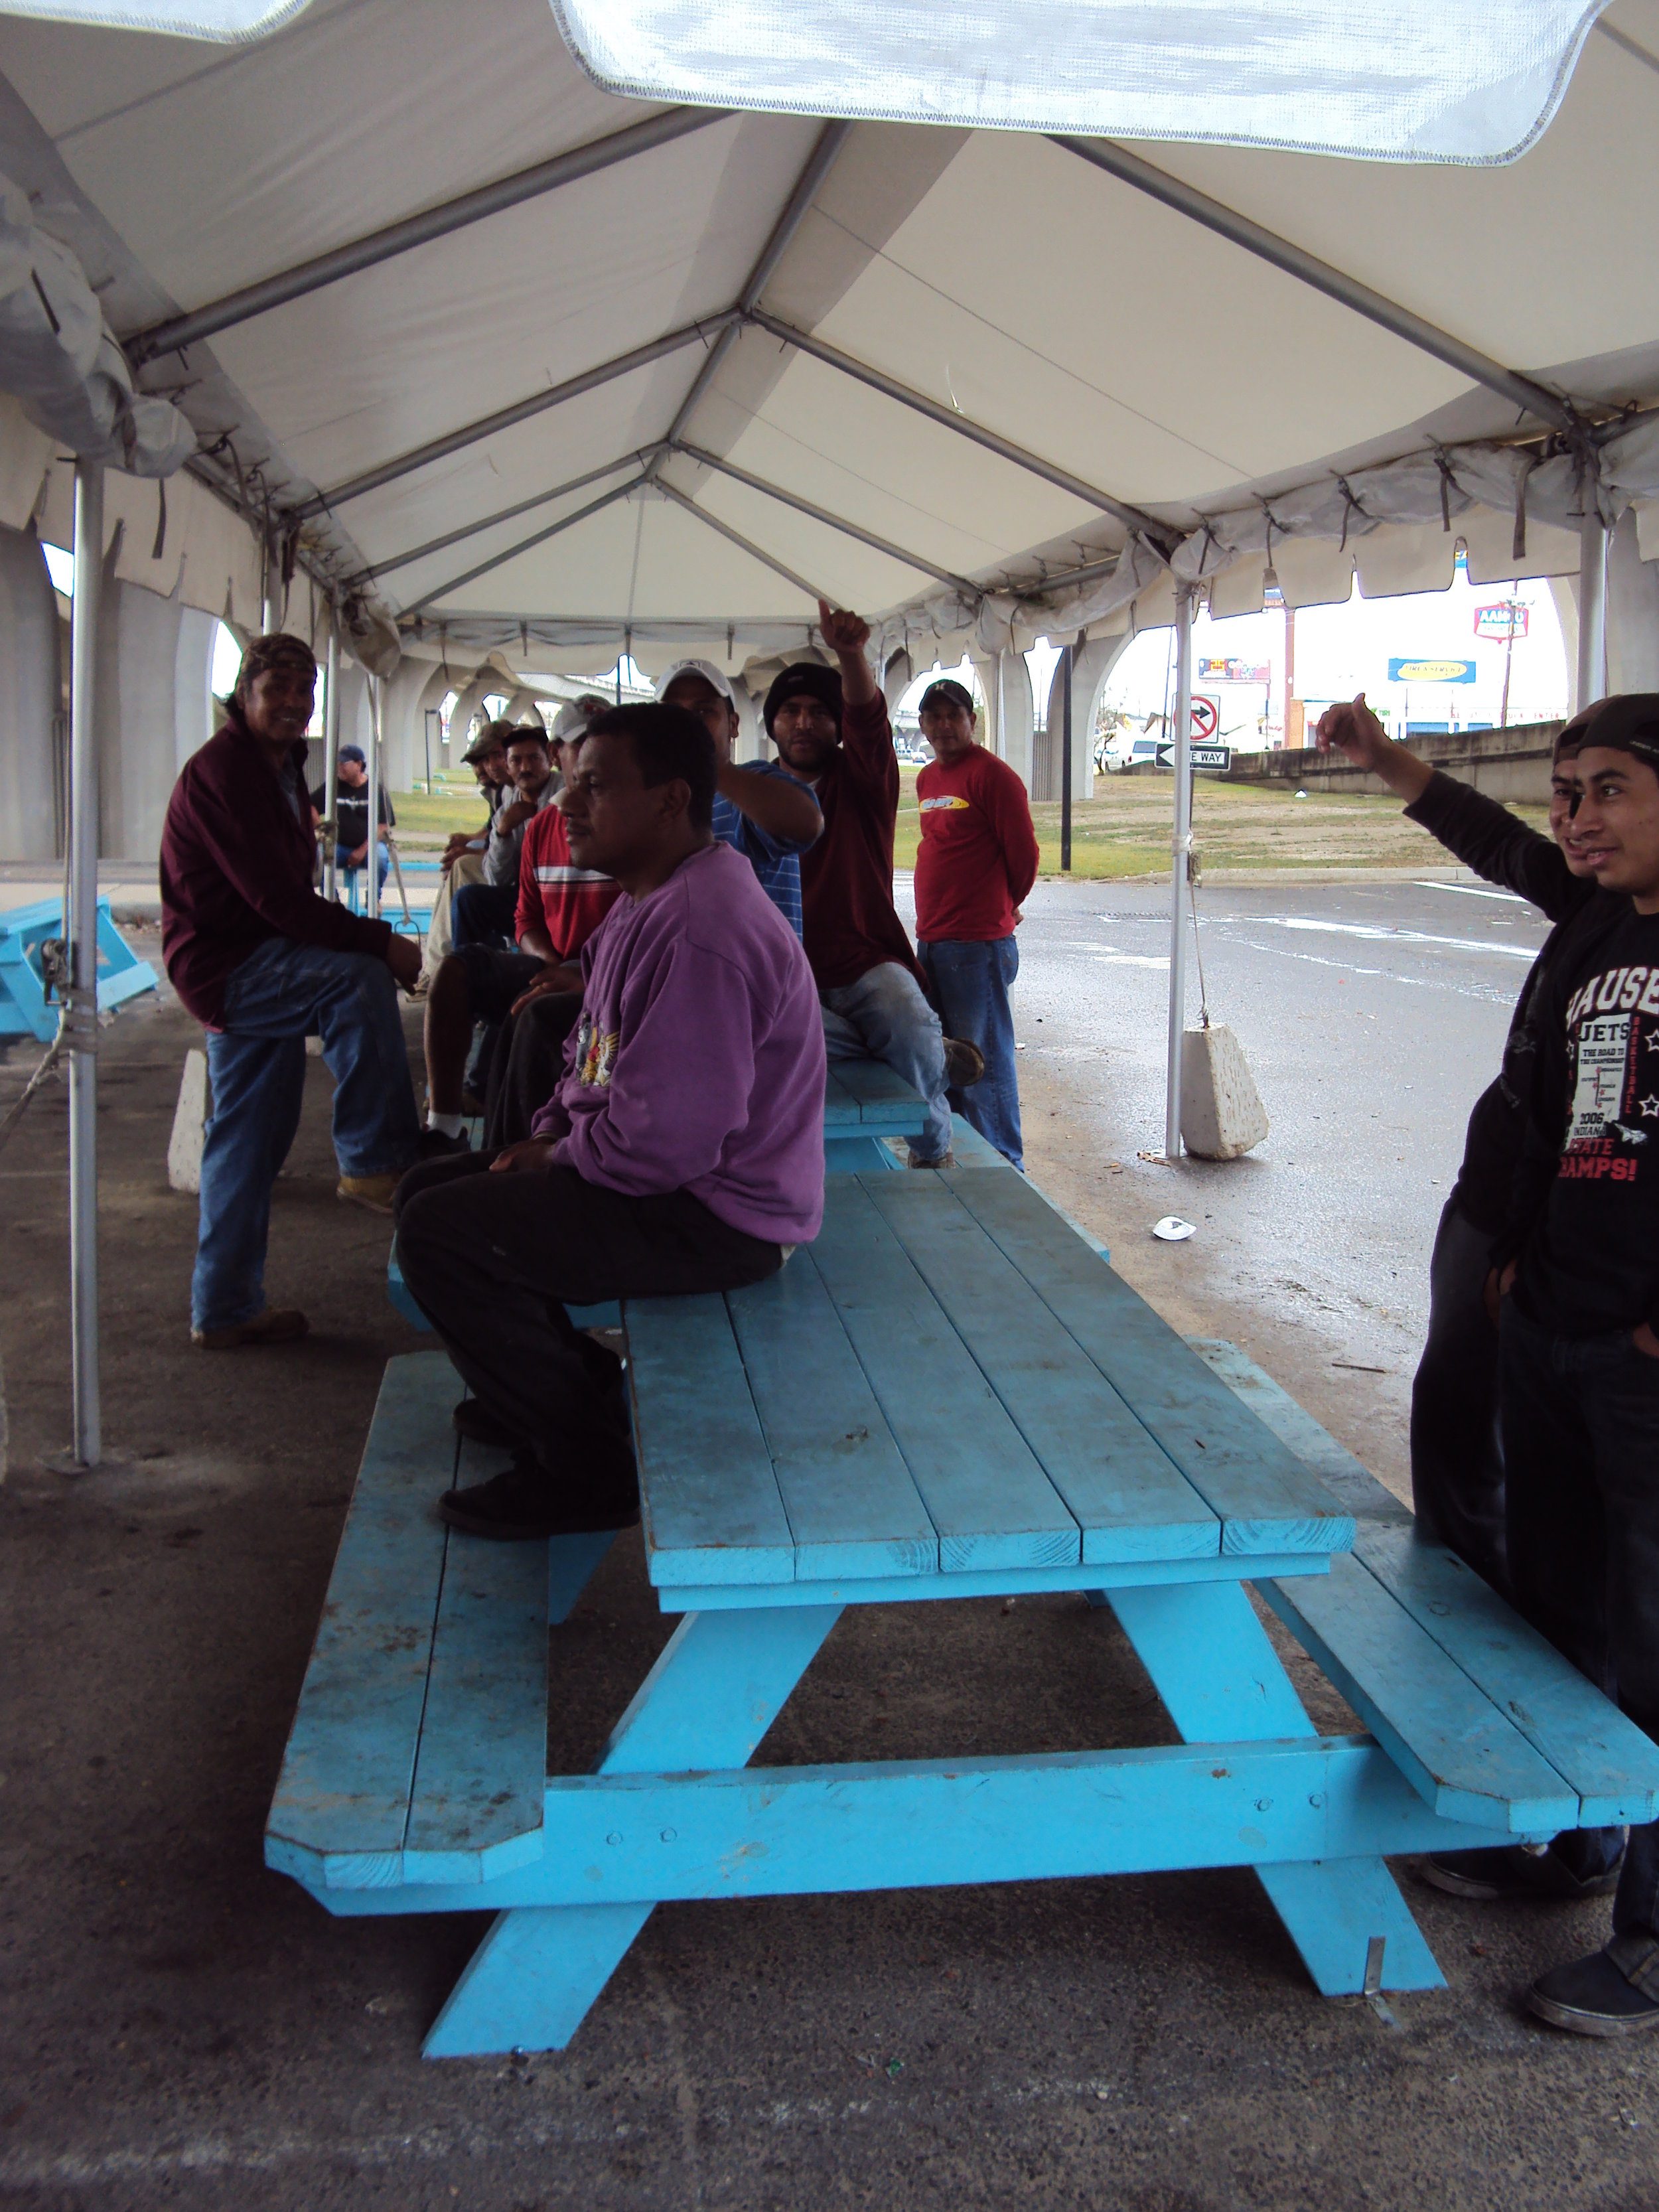 Day laborers at the Gretna corner where the workers partnered with the city to create their own space to look for jobs.